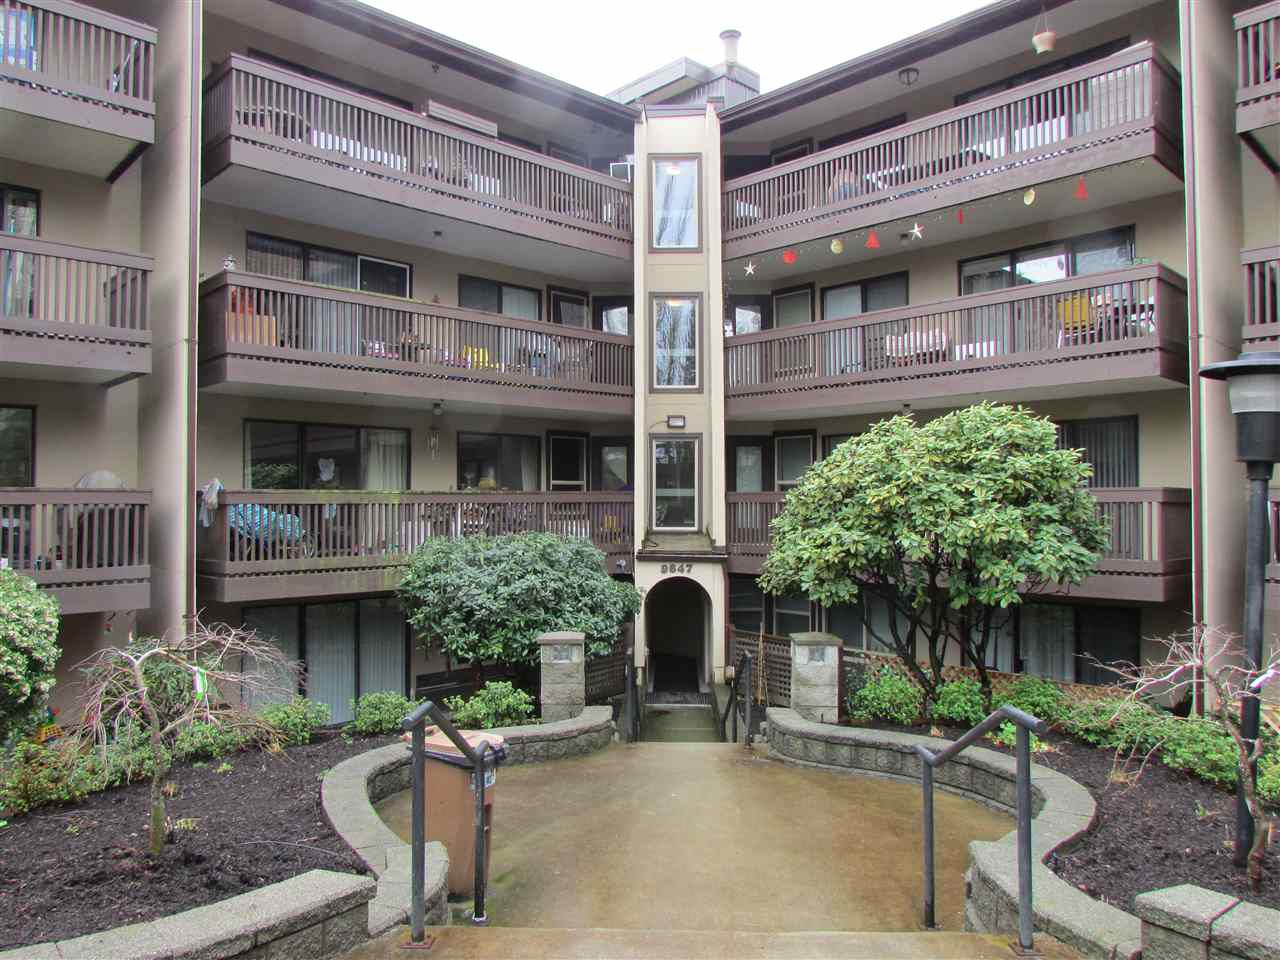 """Main Photo: 217 9847 MANCHESTER Drive in Burnaby: Cariboo Condo for sale in """"Barclay Woods"""" (Burnaby North)  : MLS®# R2041782"""